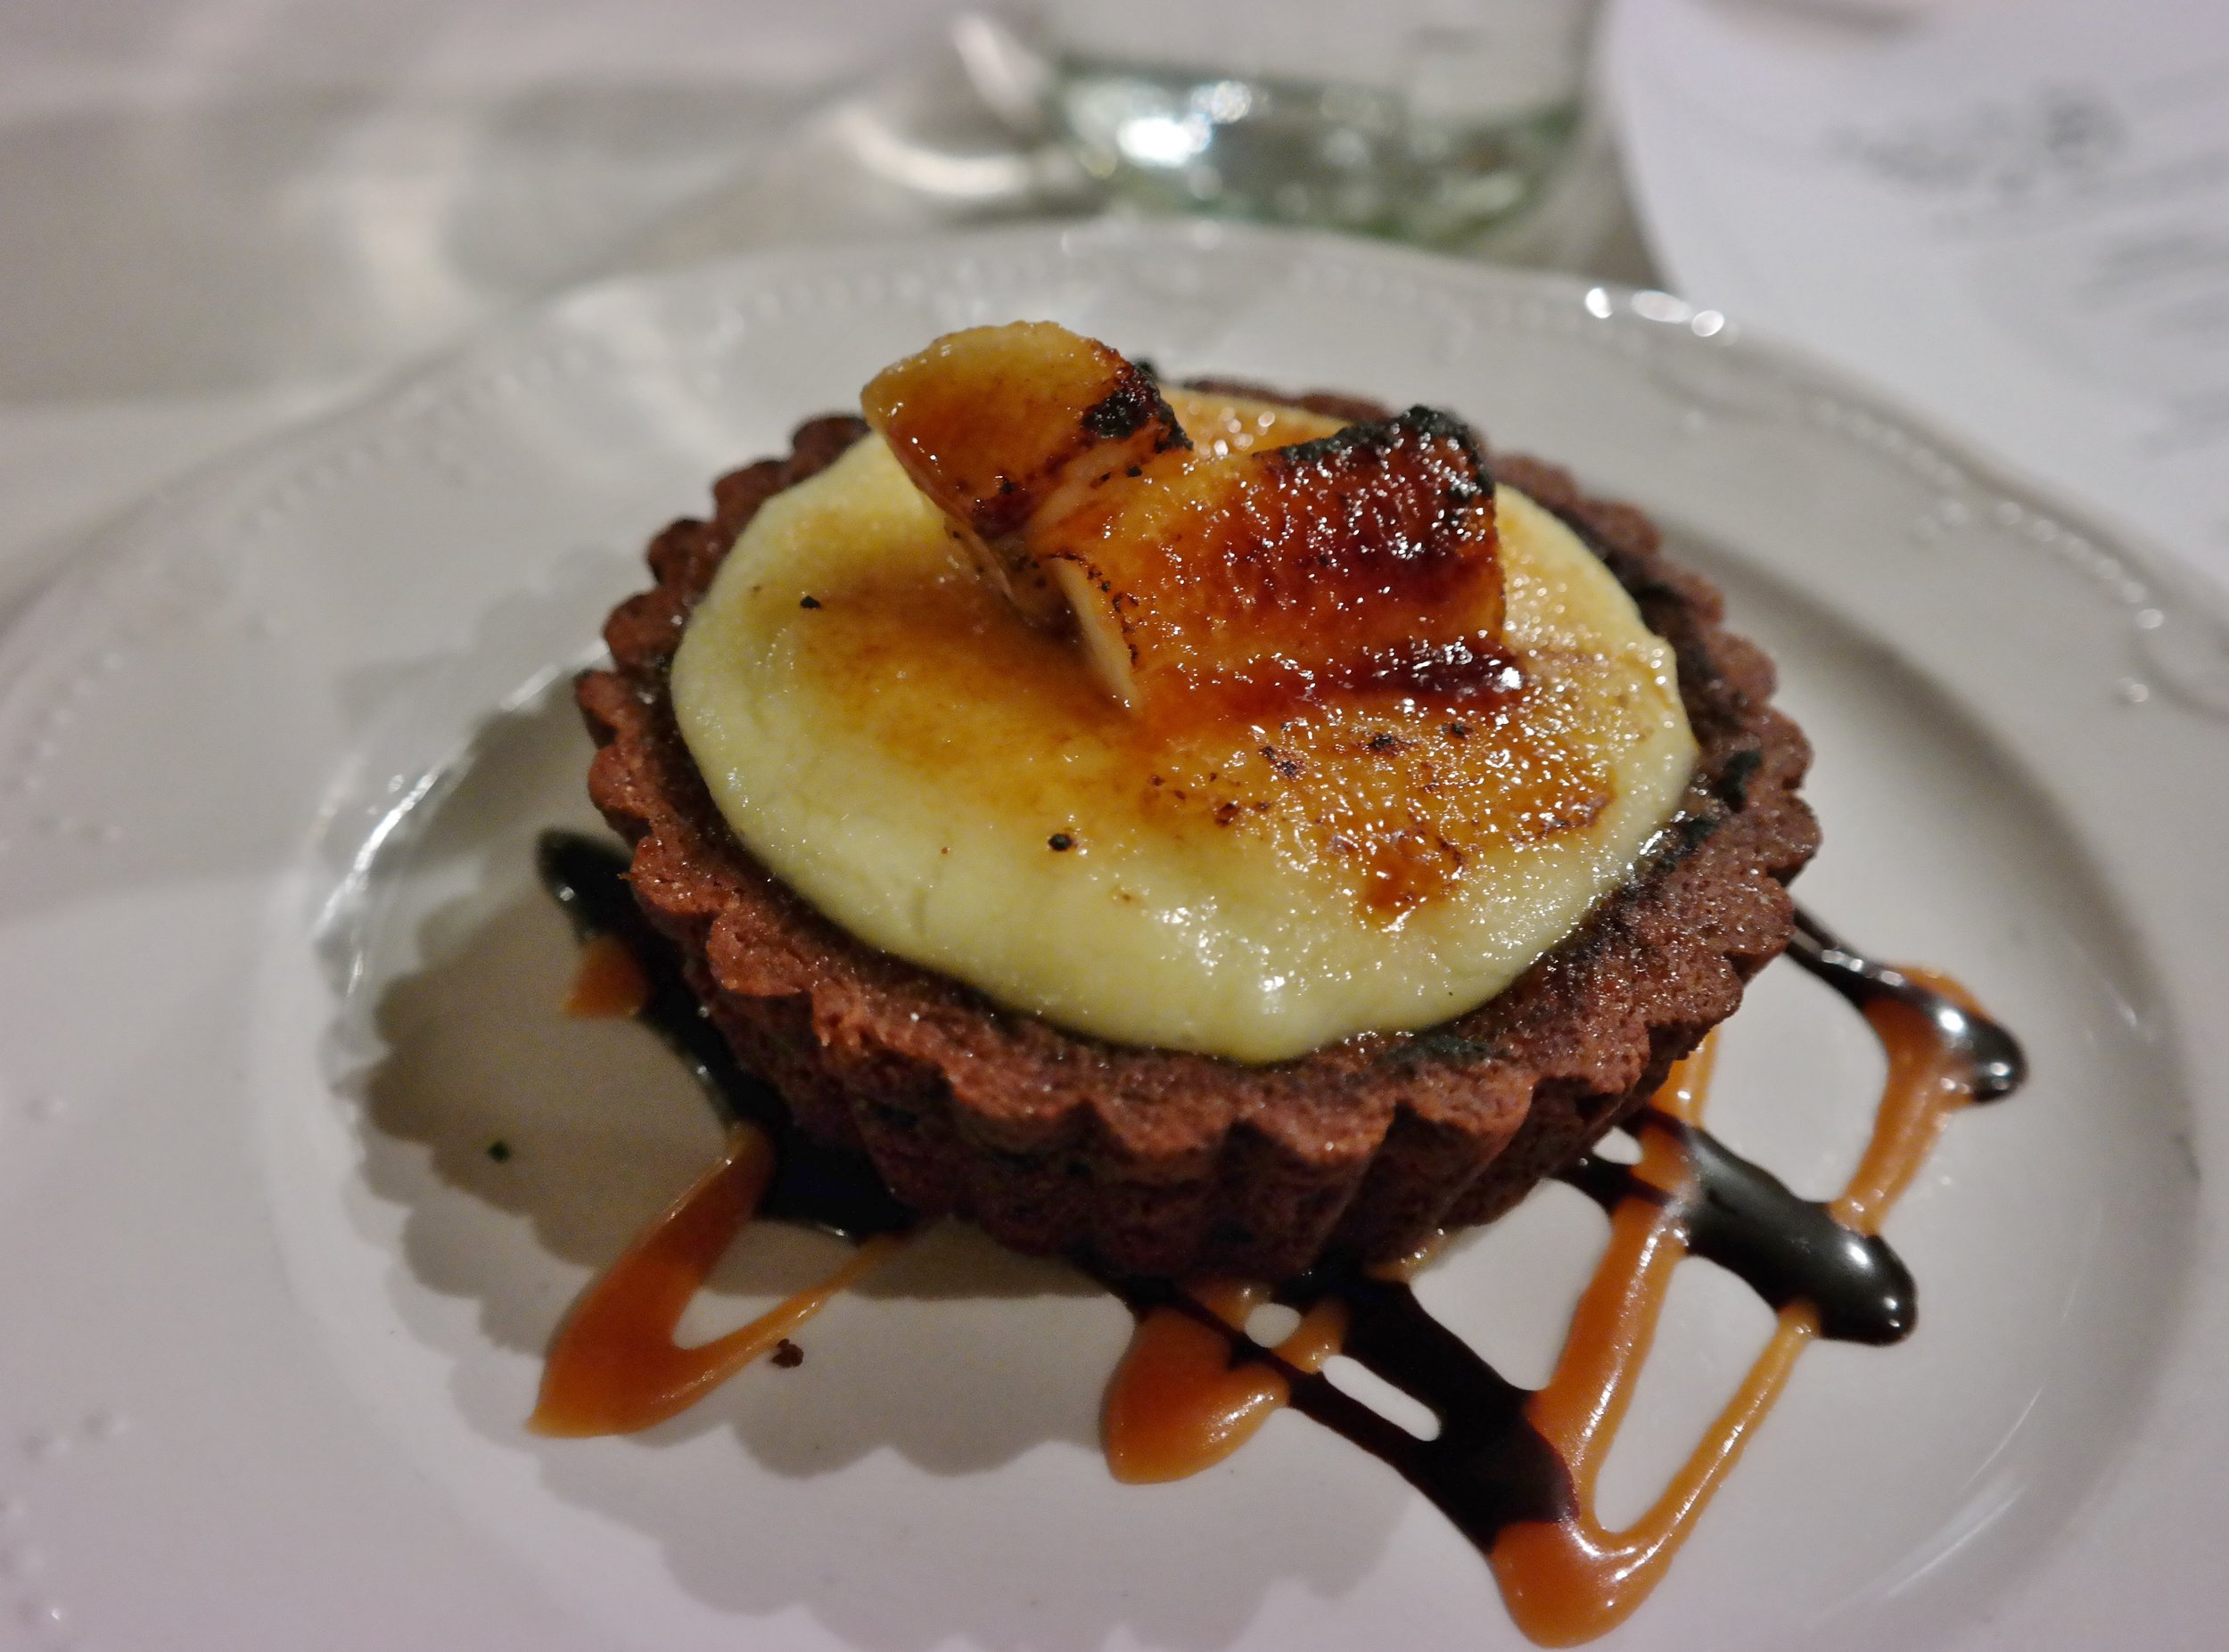 Coup des Tartes: Banana Brulee with coconut pastry cream,  banana, chocolate crust